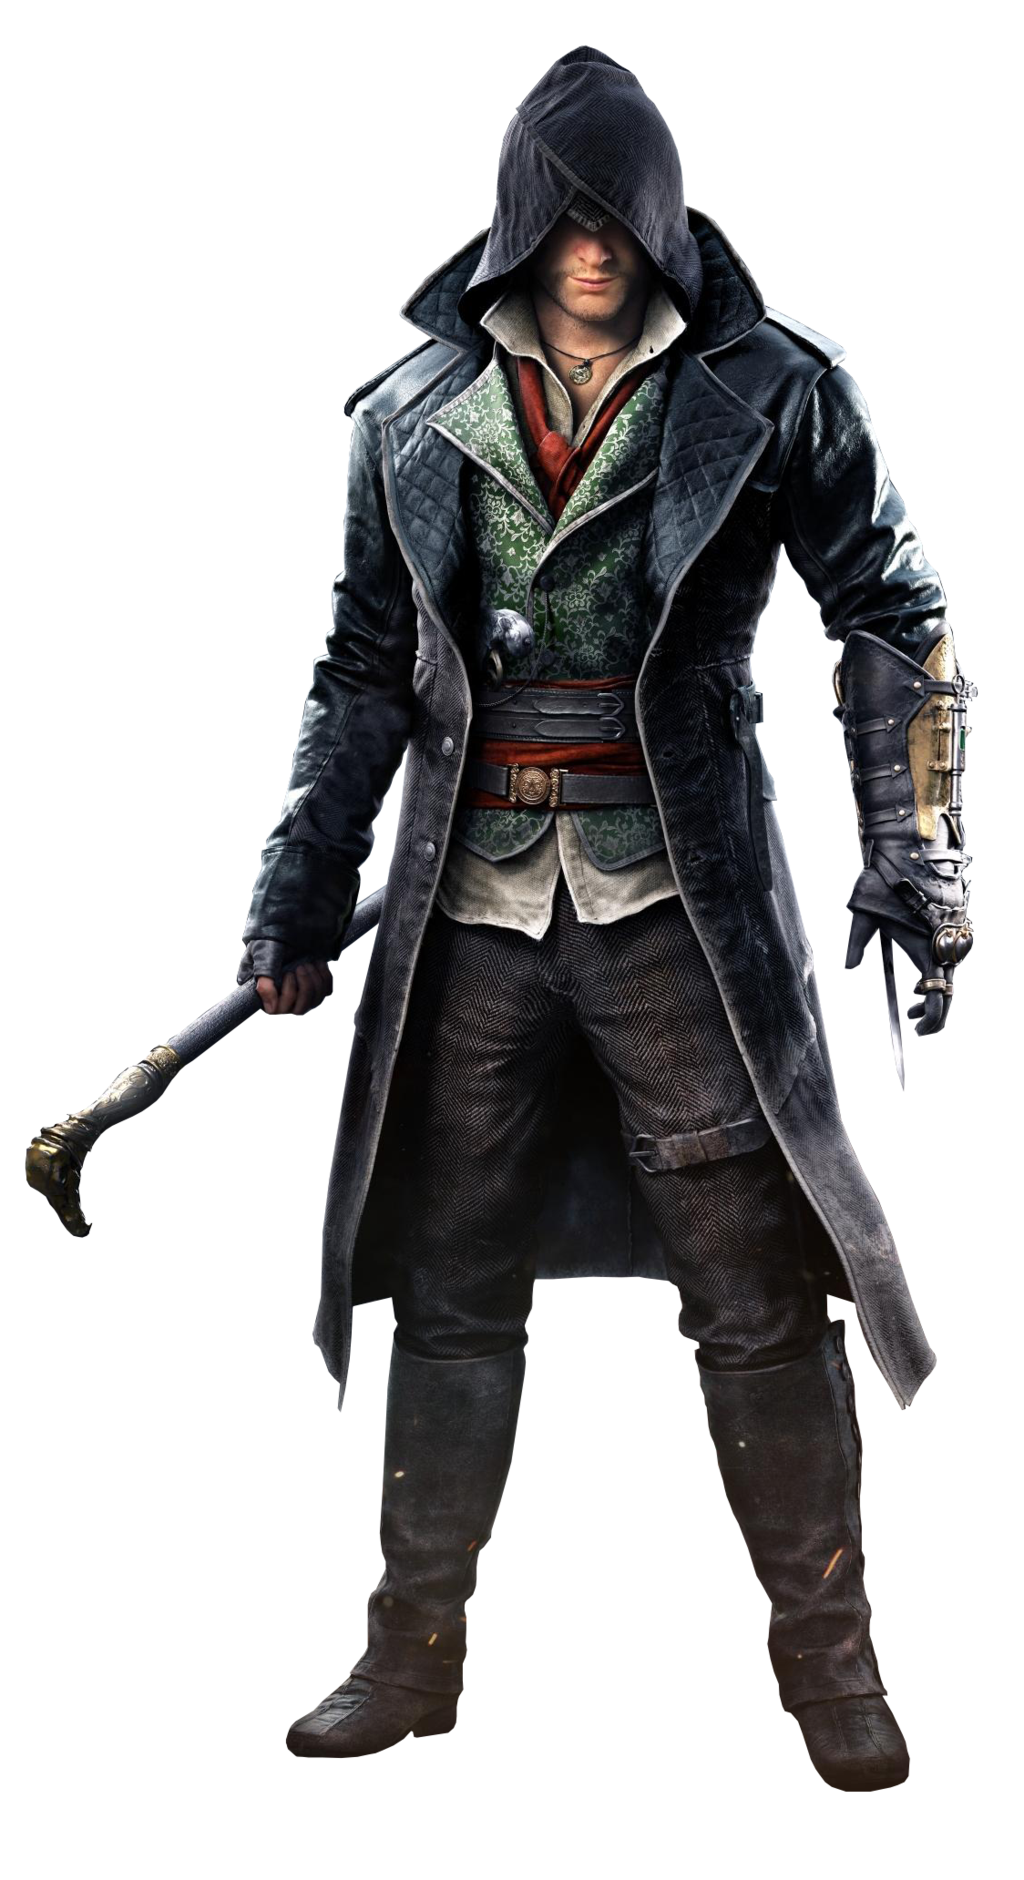 Assassin S Creed Syndicate Render Assassin Personnages Fond D Ecran Telephone